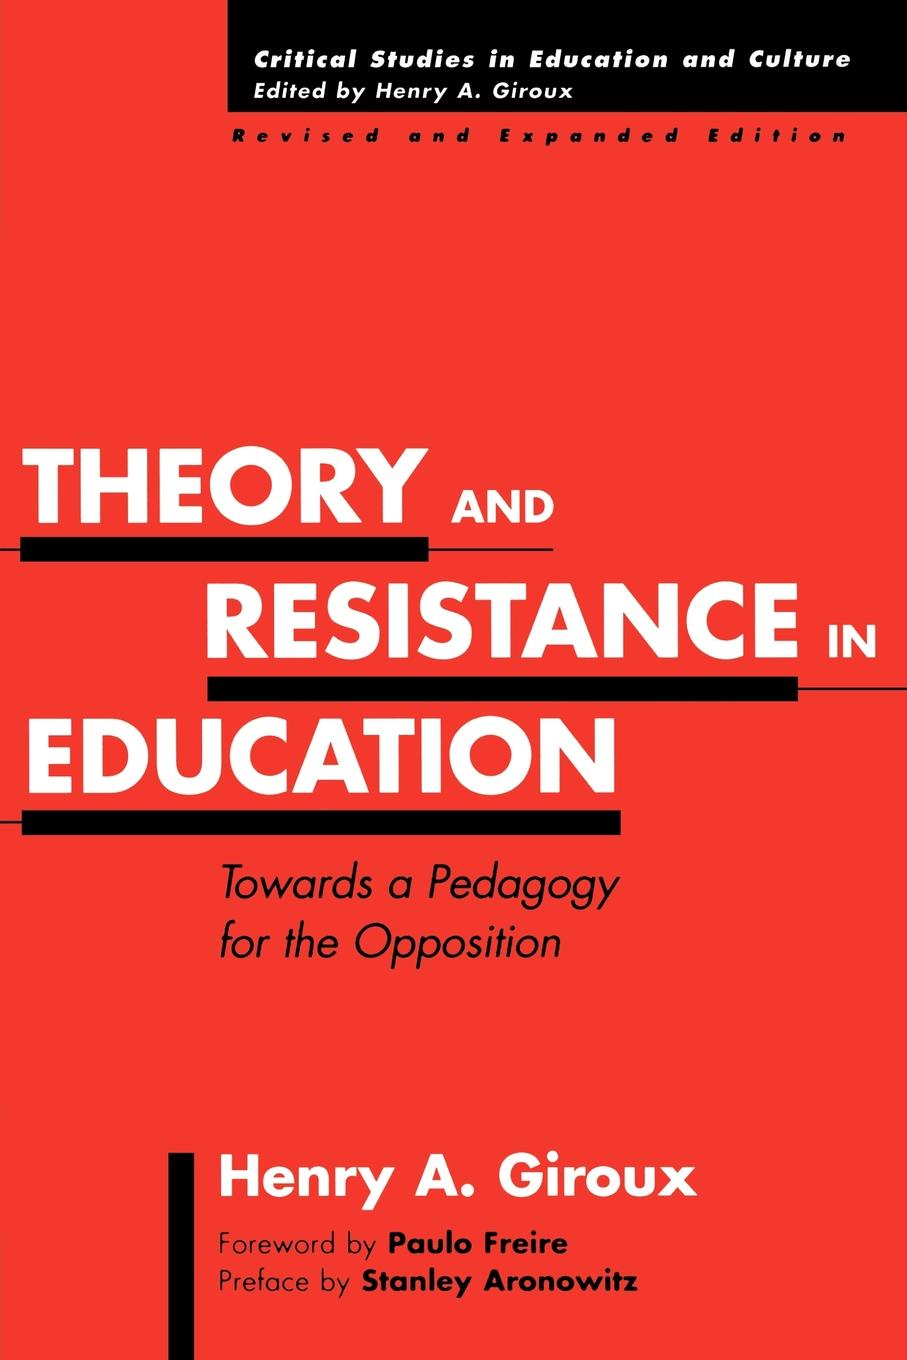 Henry A. Giroux Theory and Resistance in Education. Towards a Pedagogy for the Opposition, Revised and Expanded Edition amy gutmann democratic education revised edition